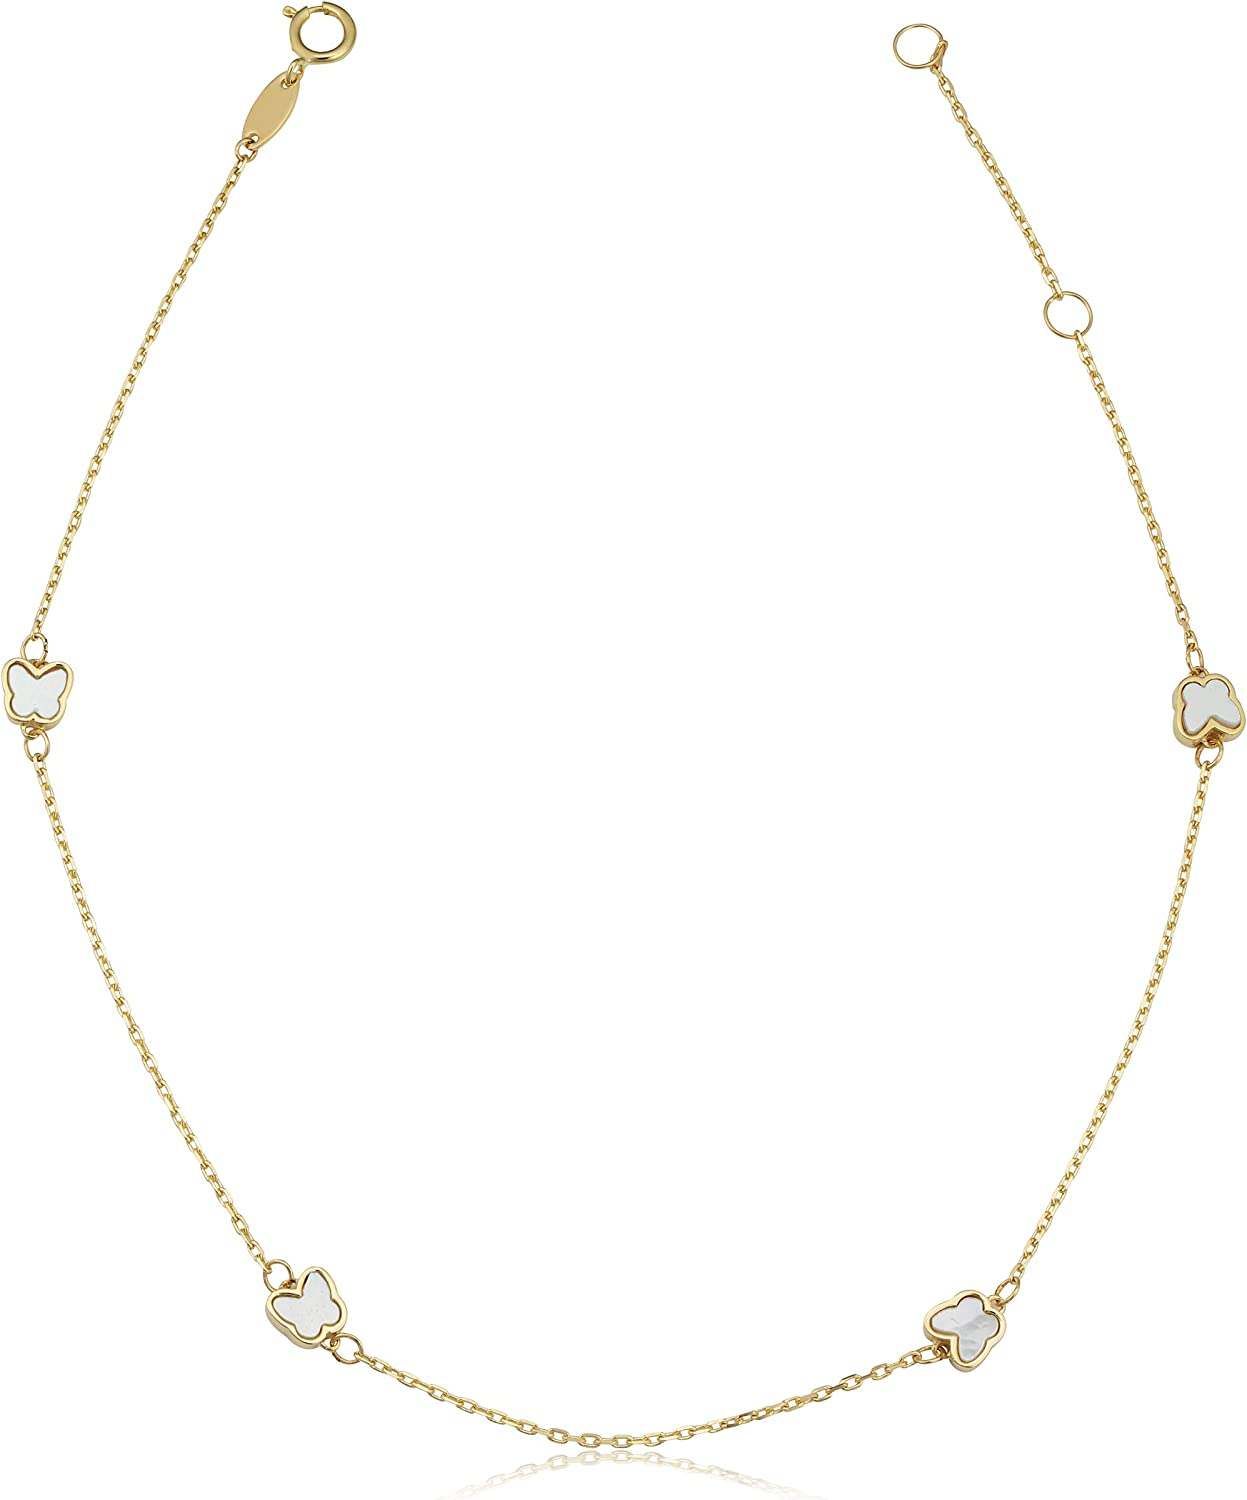 14K Yellow Gold Diamond Cut Beads Stations Anklet Adjustable 9 to 10 length